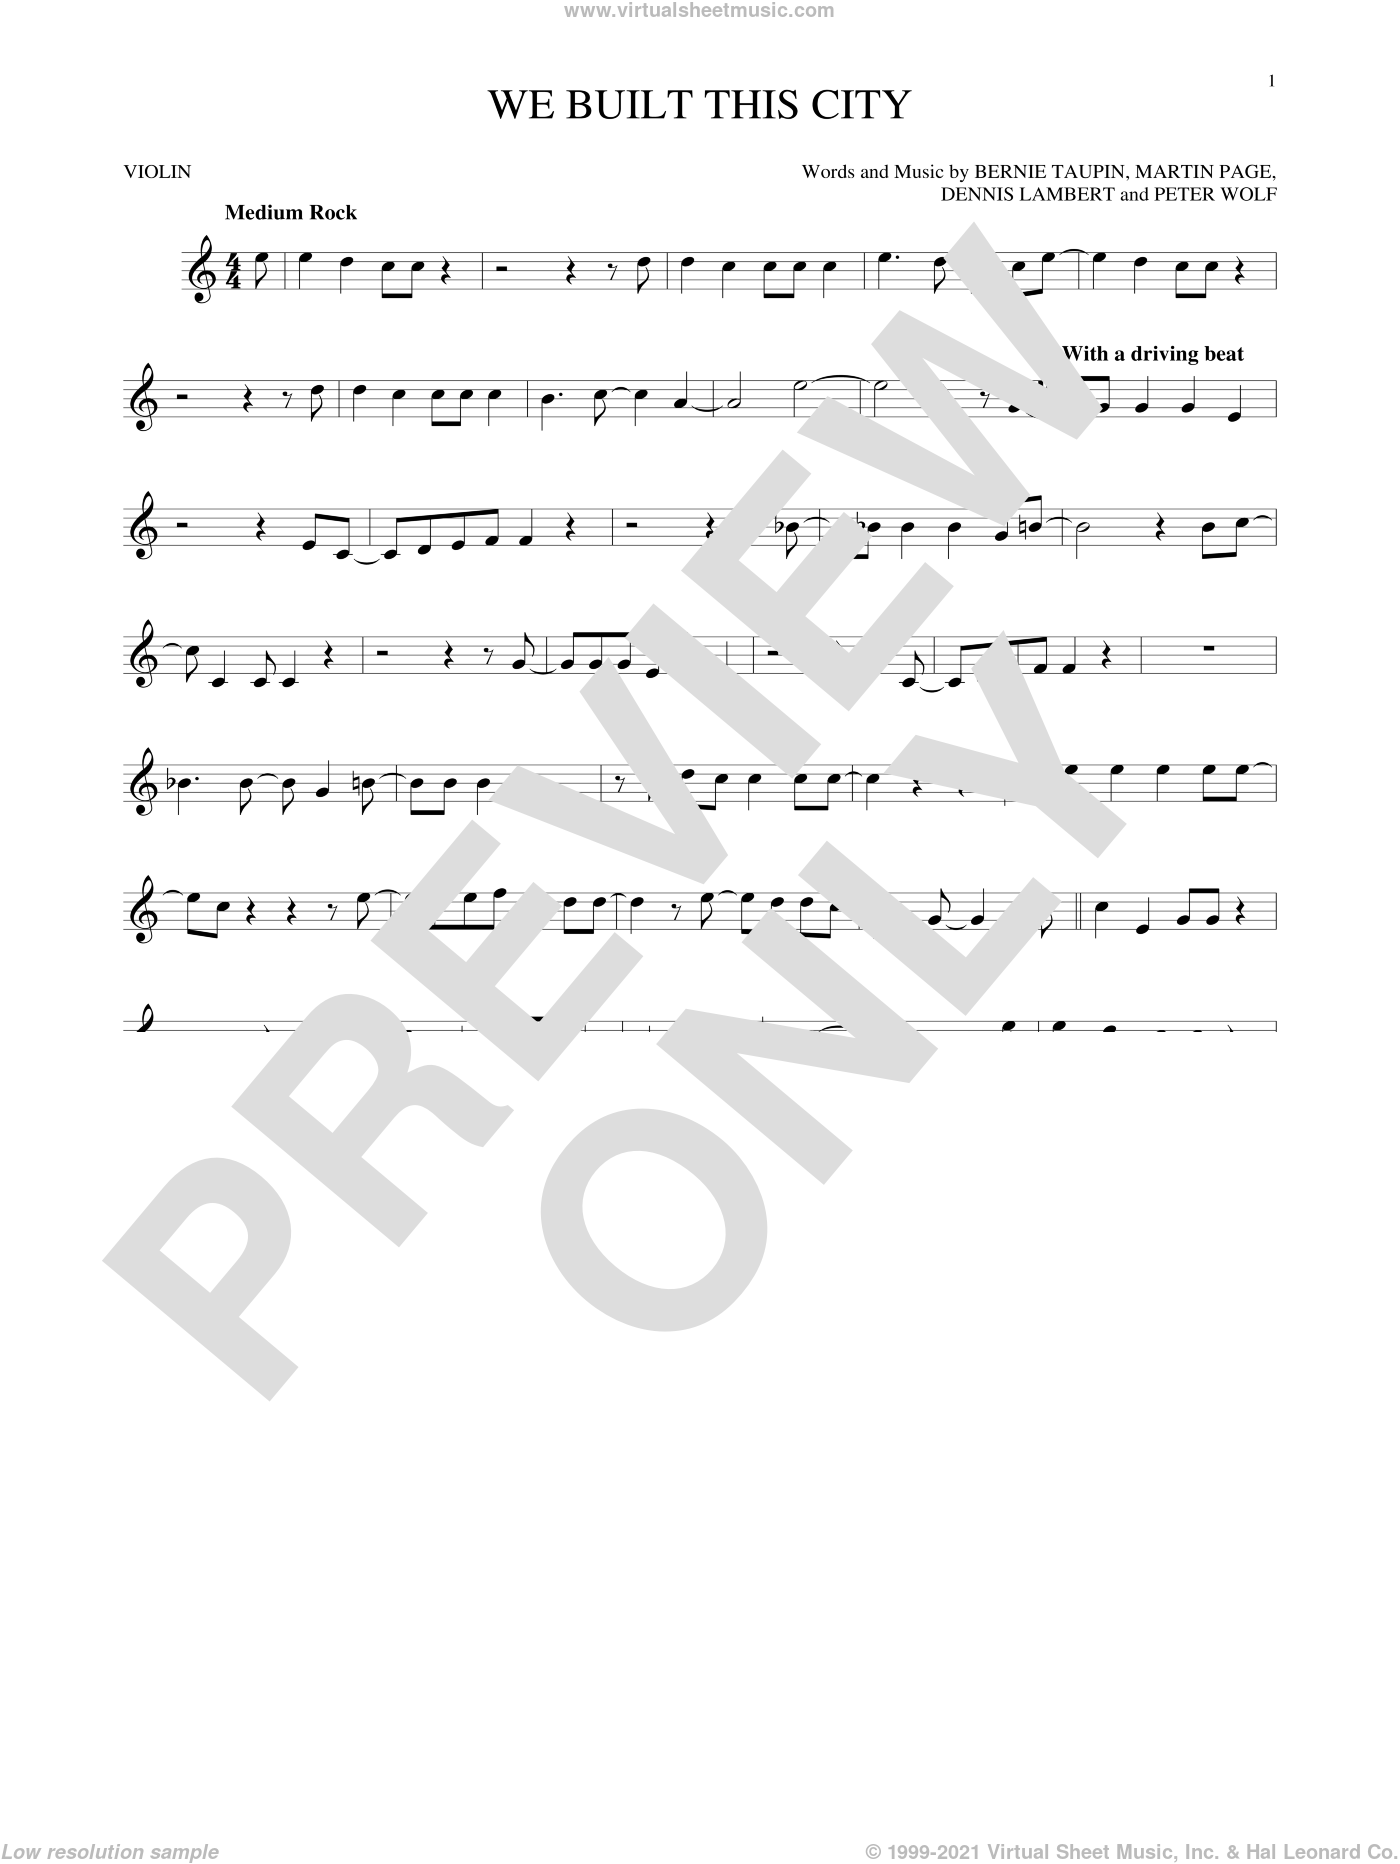 We Built This City sheet music for violin solo by Starship, Bernie Taupin, Dennis Lambert, Martin George Page and Peter Wolf, intermediate skill level